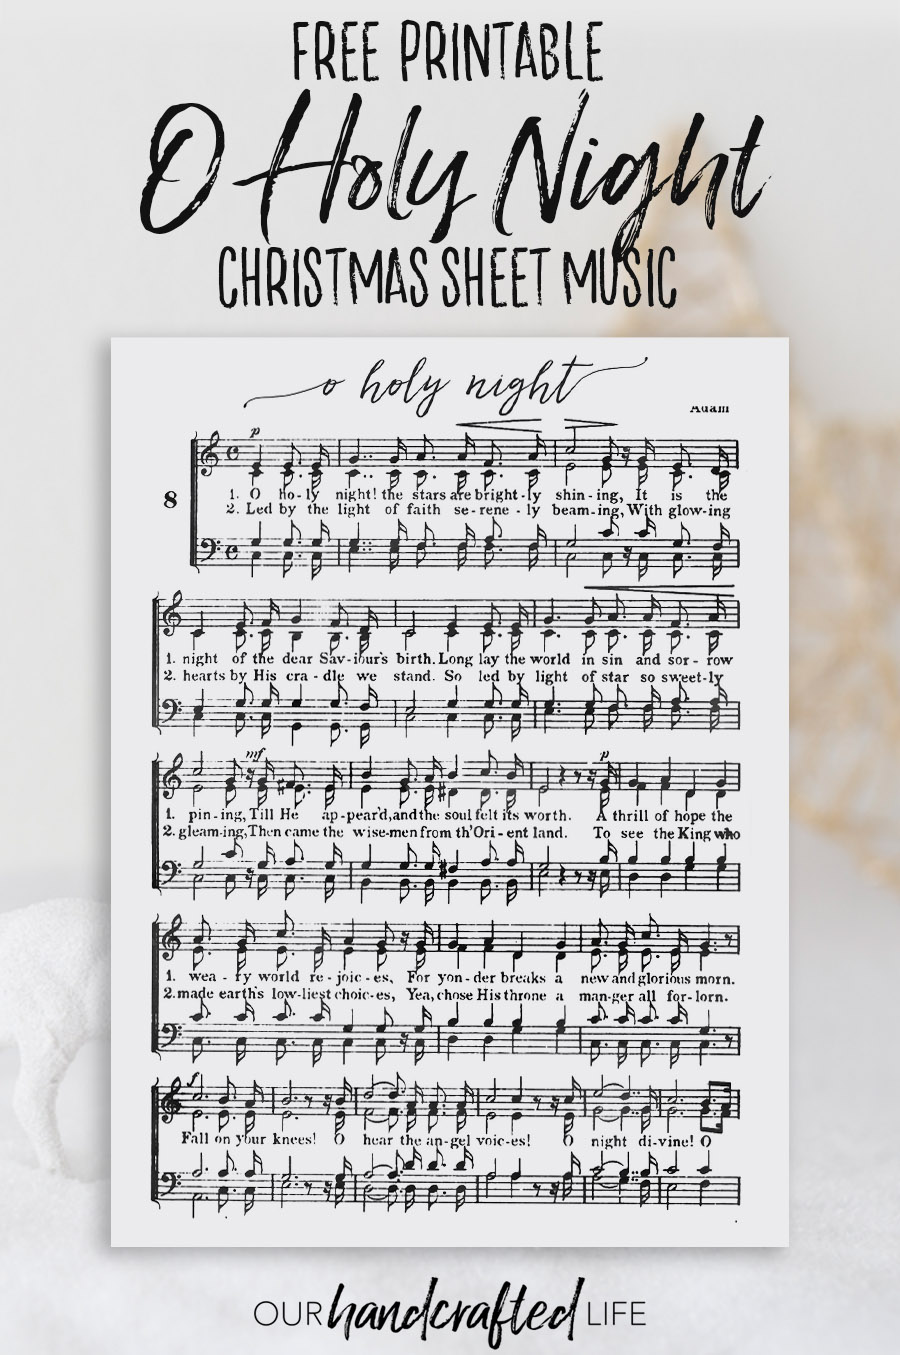 photo regarding Printable Christmas Sheet Music named O Holy Night time - Cost-free Printable Xmas Sheet Audio - Our